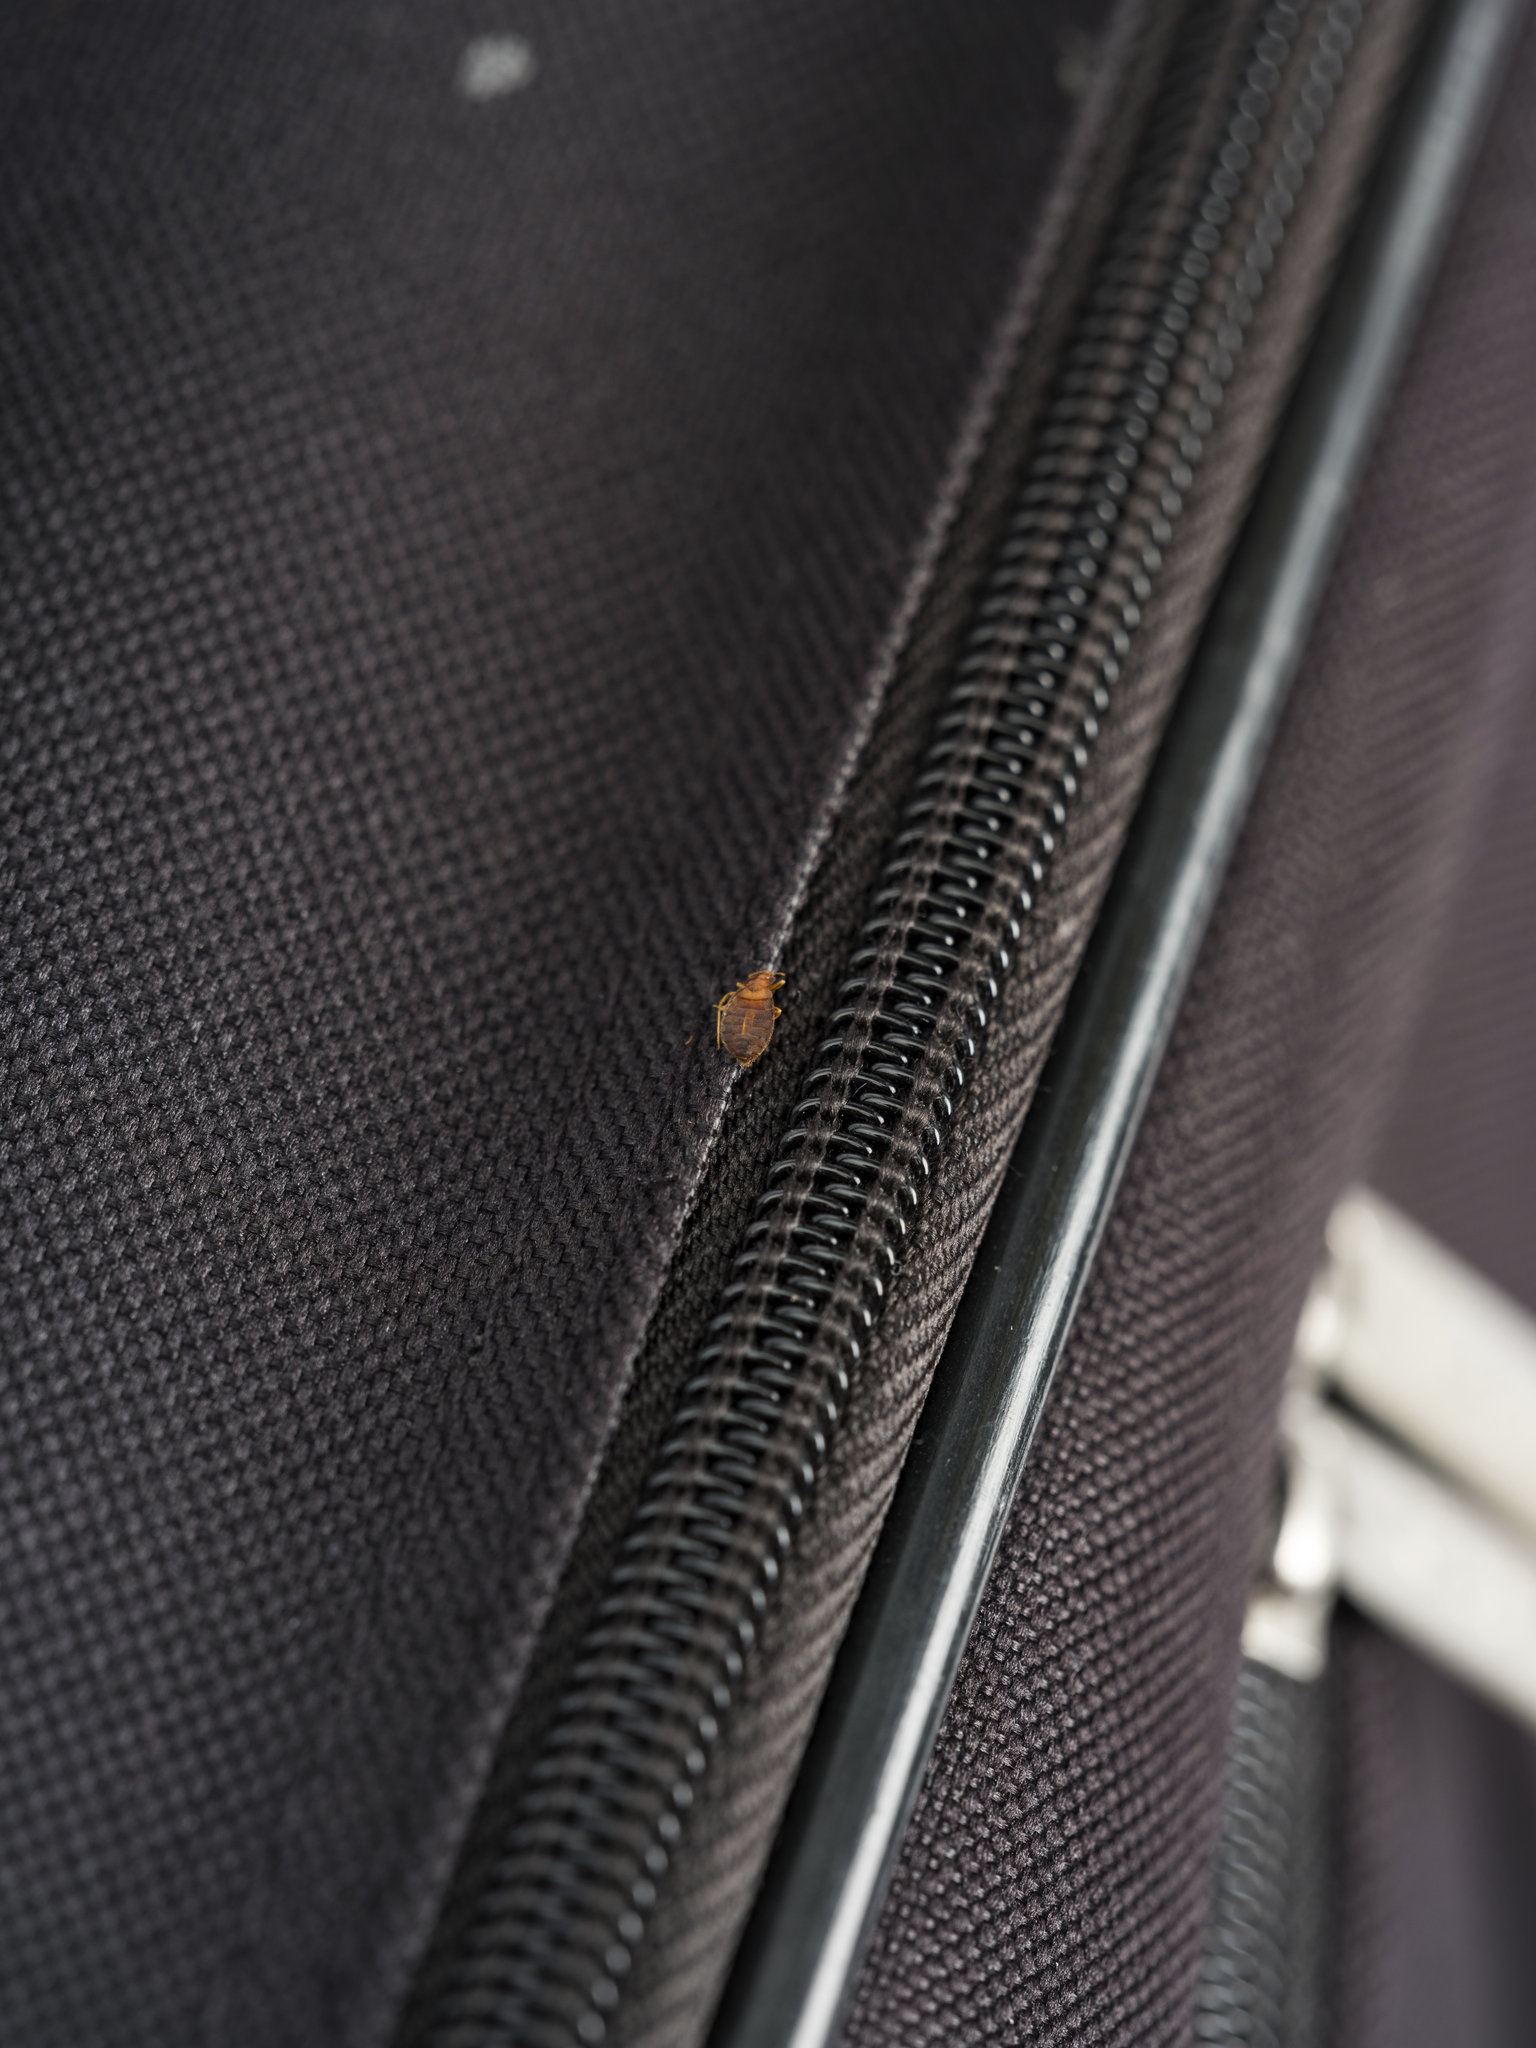 picture of a bed bug on luggage